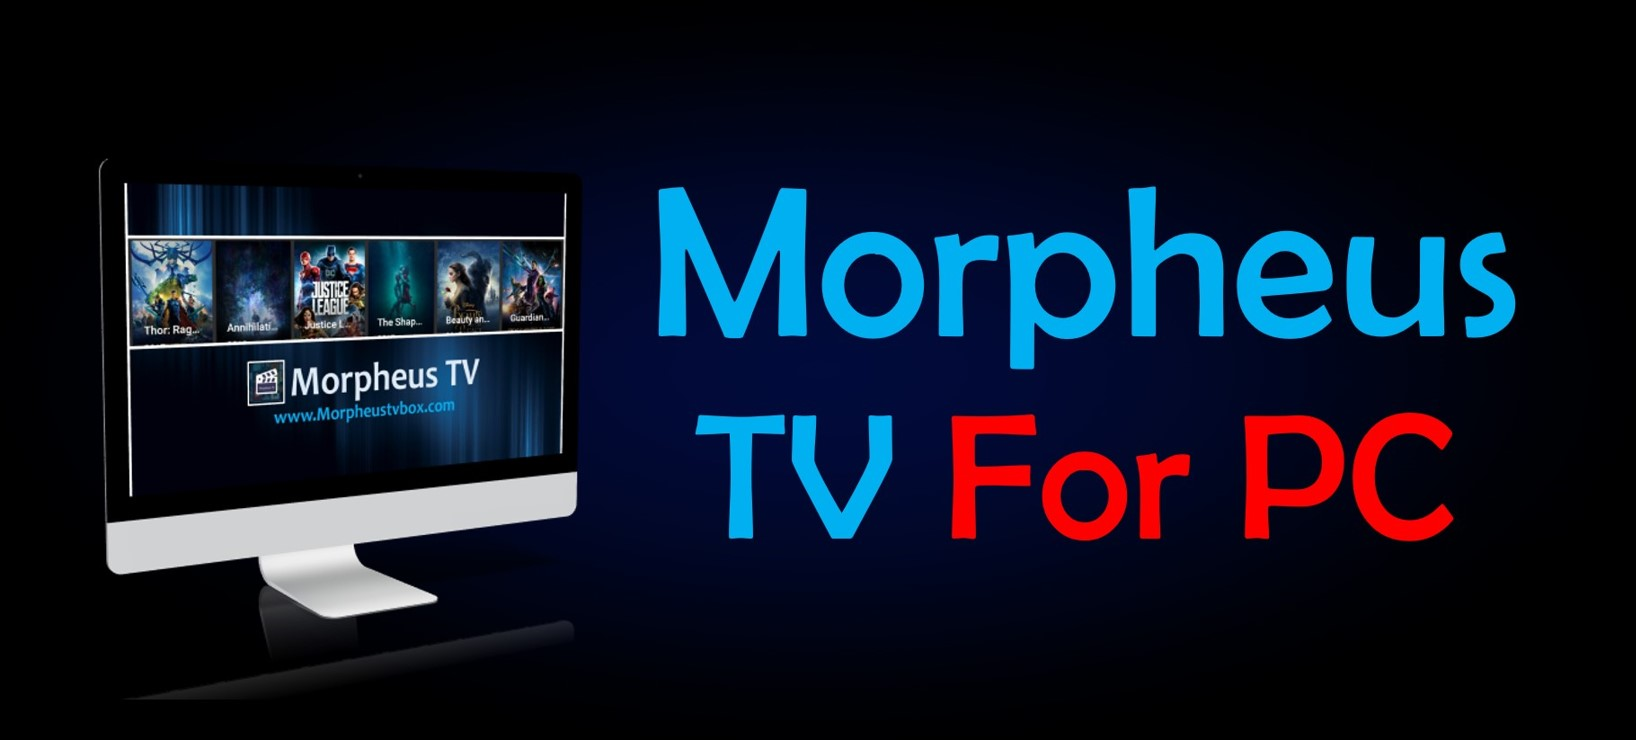 morpheus tv download Archives - Morpheus TV APK 1 66 | Download for